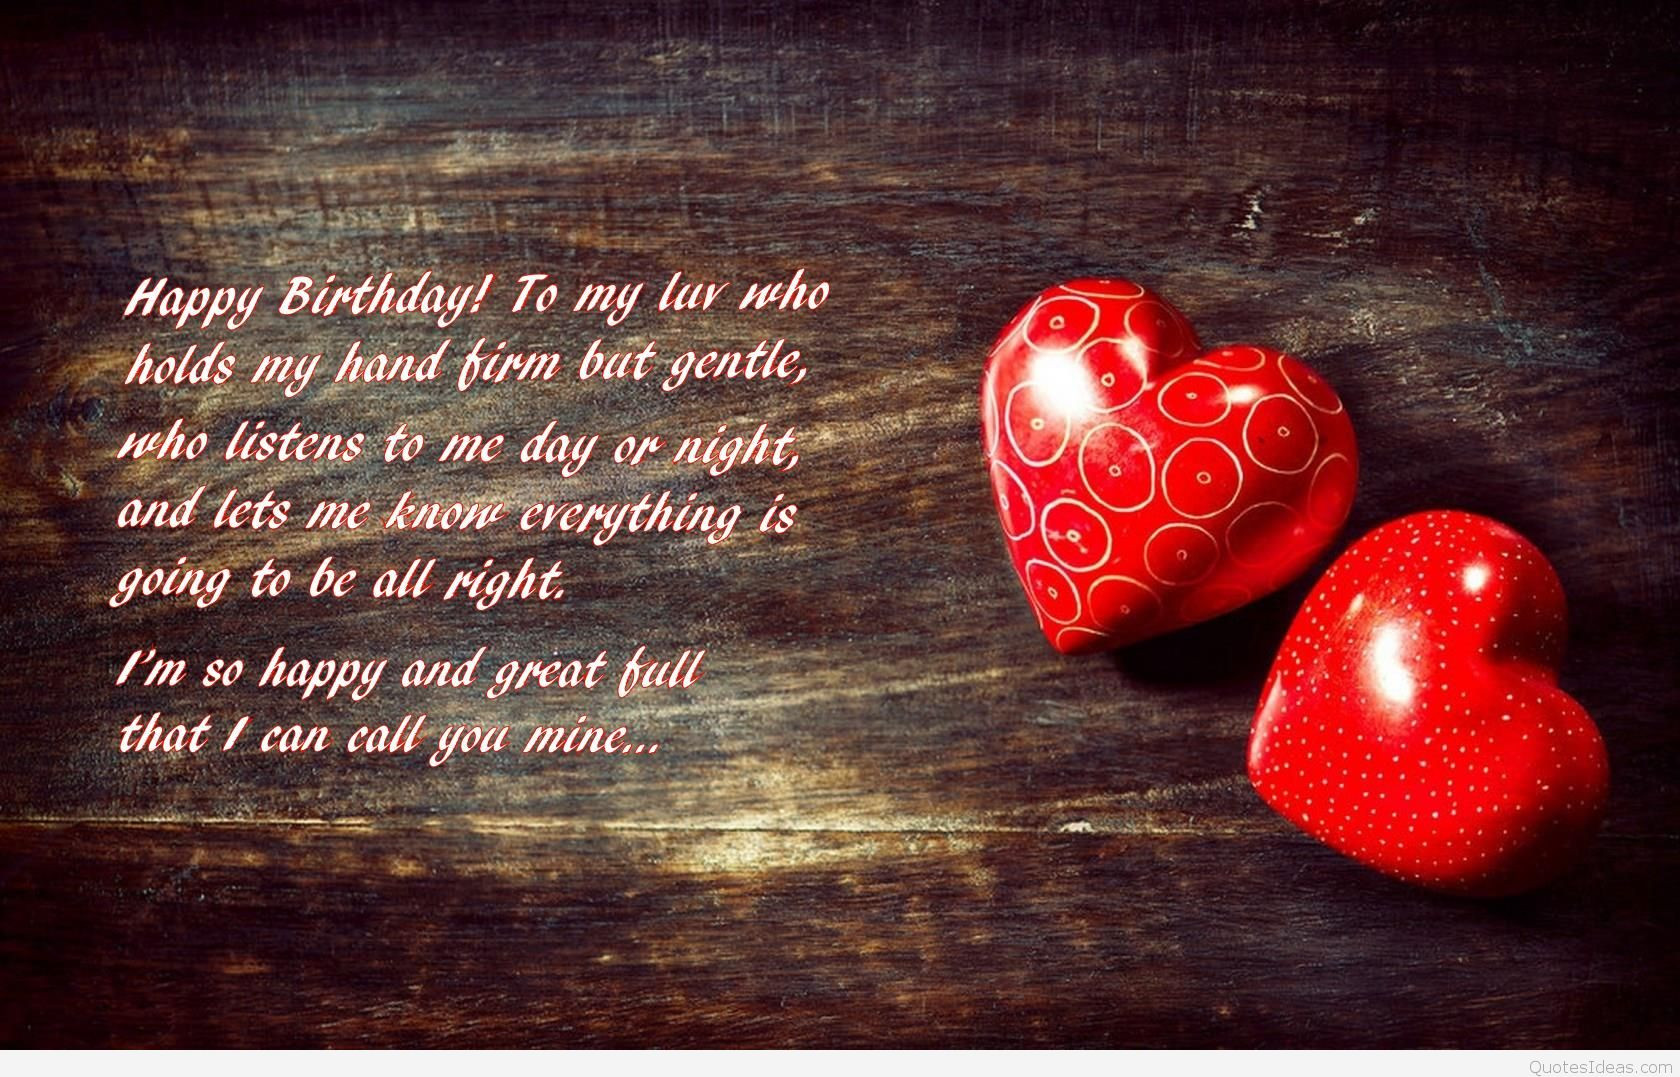 Best ideas about Happy Birthday My Love Quotes For Him . Save or Pin cool birthday messages Now.